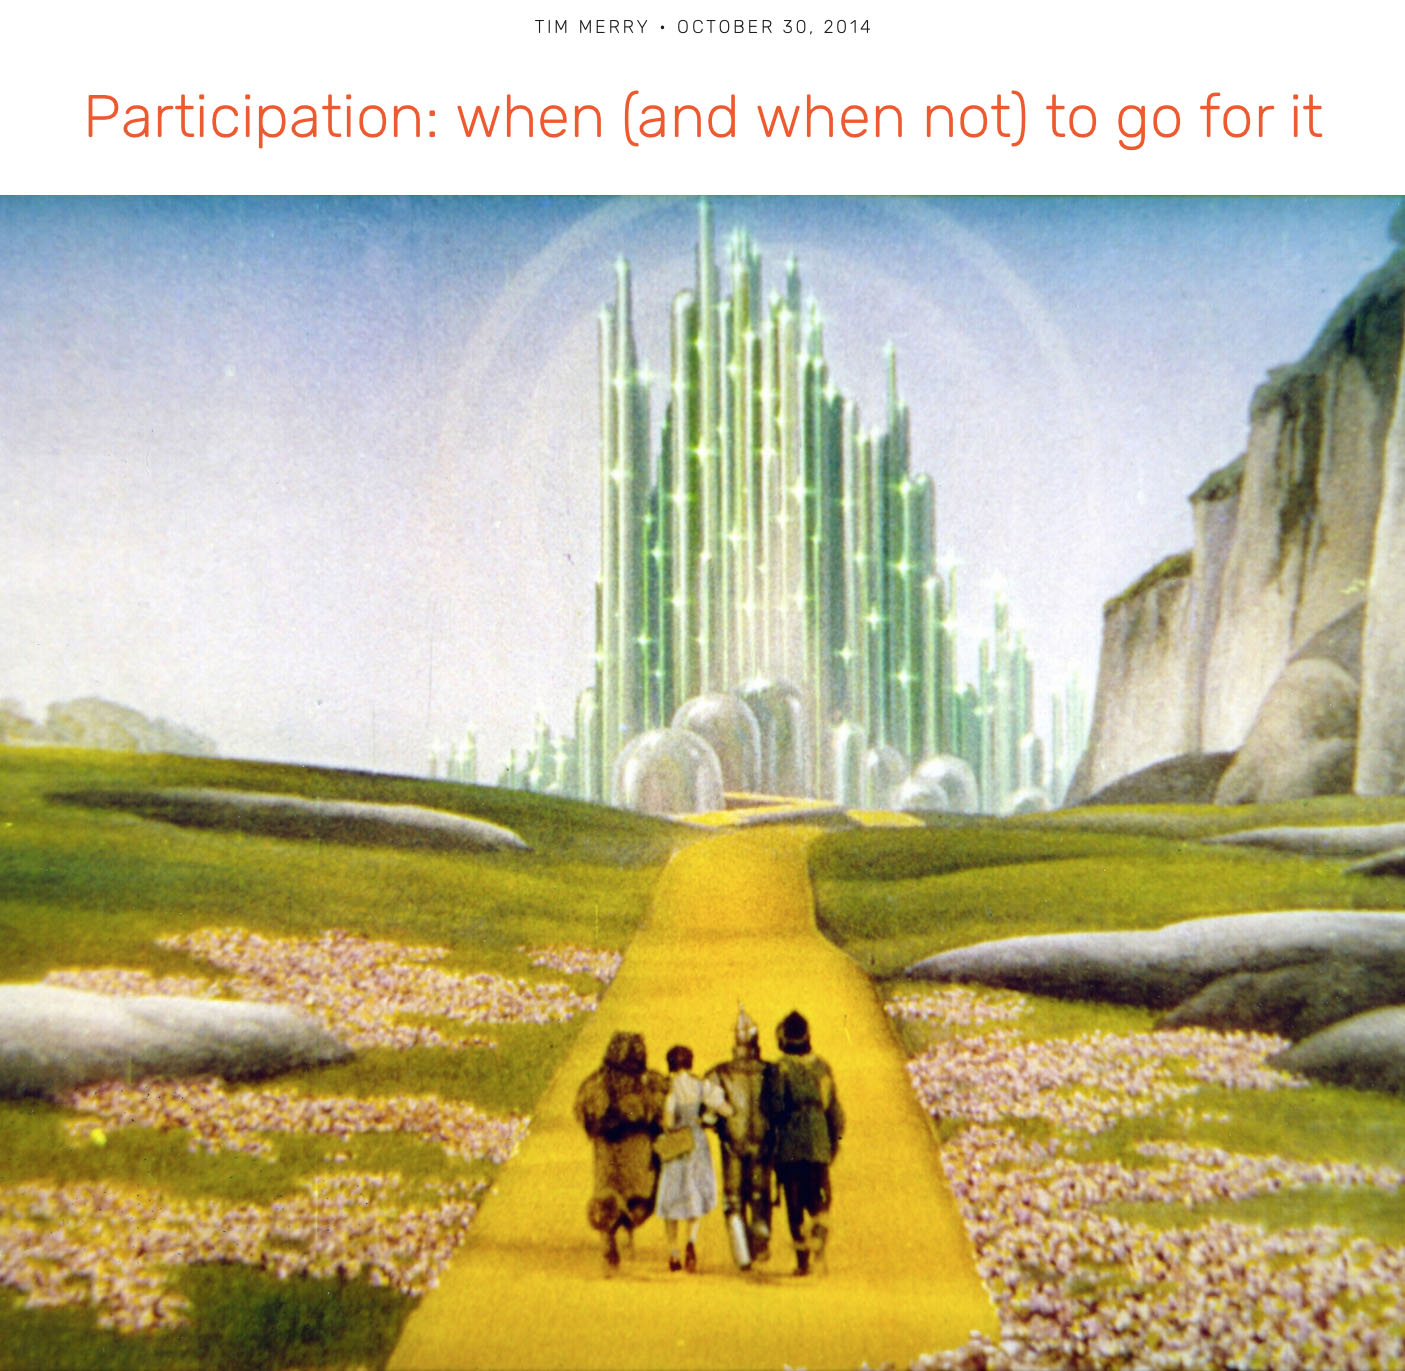 """BLOG:  Participation - when (and when not) to go for it  / """"In this same meeting of senior leaders last week one person said that it feels like """"a participatory leadership takeover!"""" This lead us into a great conversation about when and when not to apply a participatory approach. This type of discernment is essential to expanding our leadership to integrate greater engagement. Everyone seems to want do it, but the right conditions are critical..."""""""